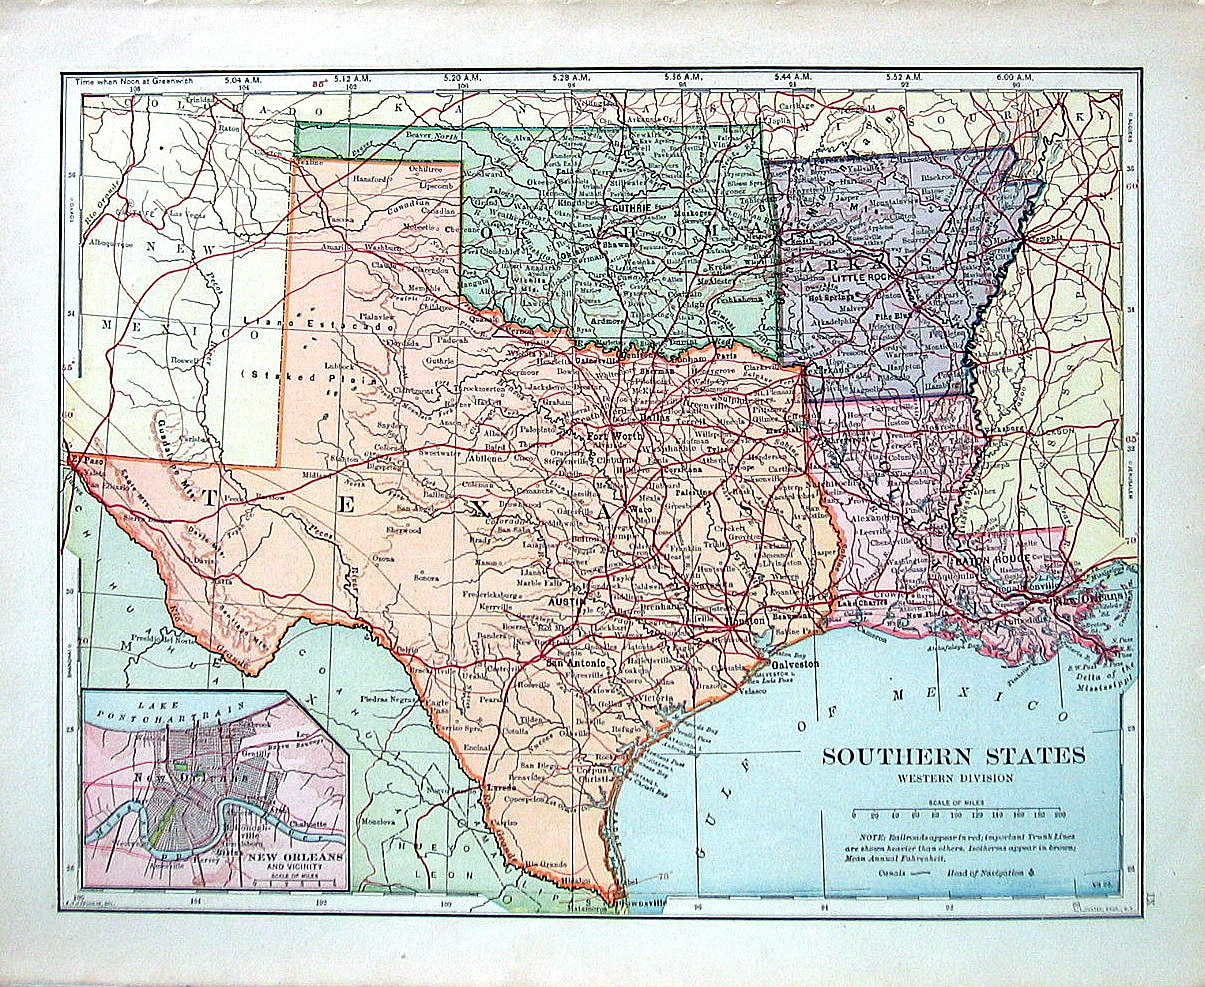 US State Map Southern States Texas Oklahoma Arkansas